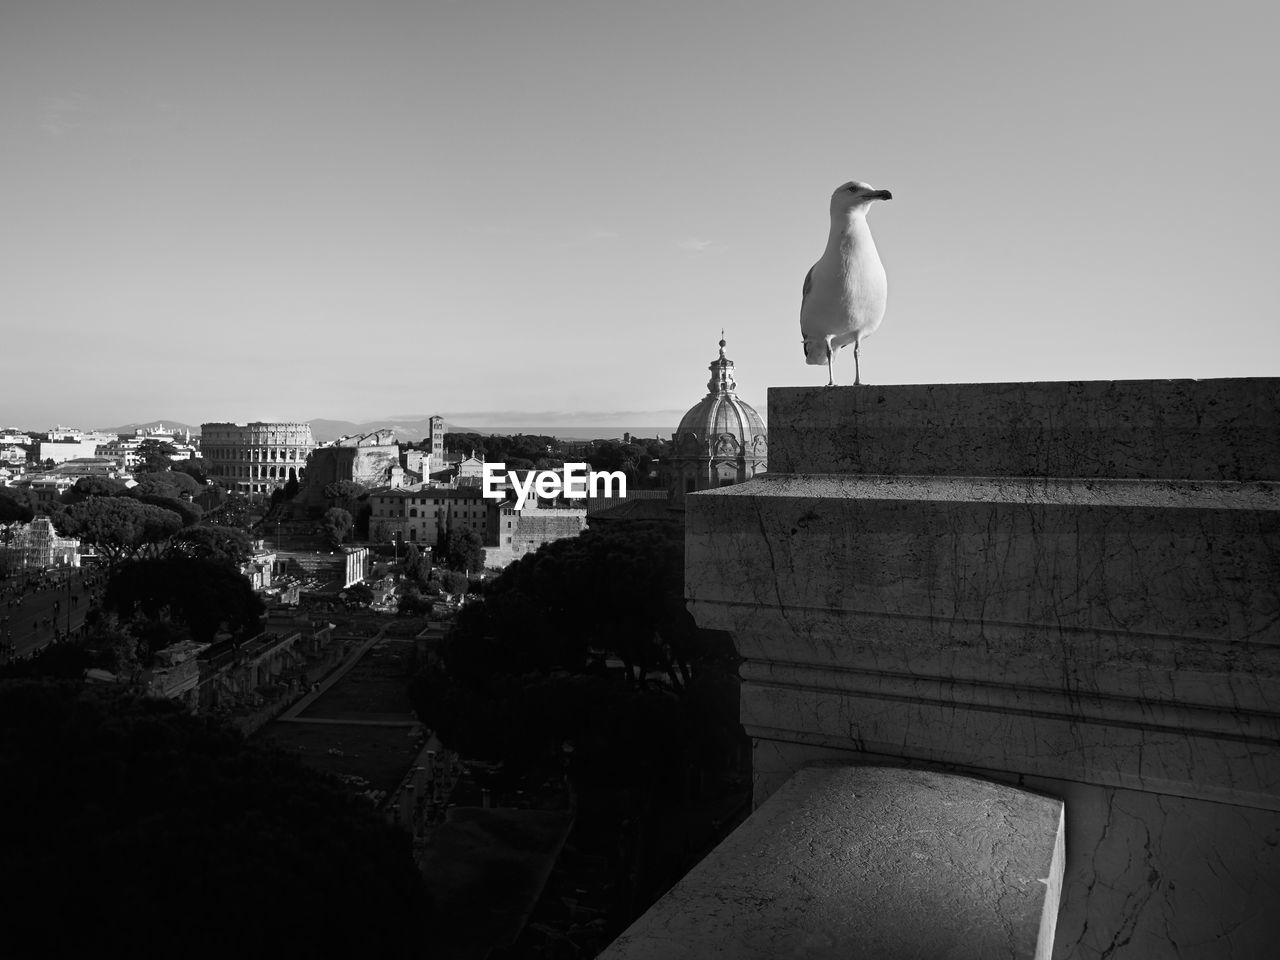 Seagull on statue against buildings in city against clear sky